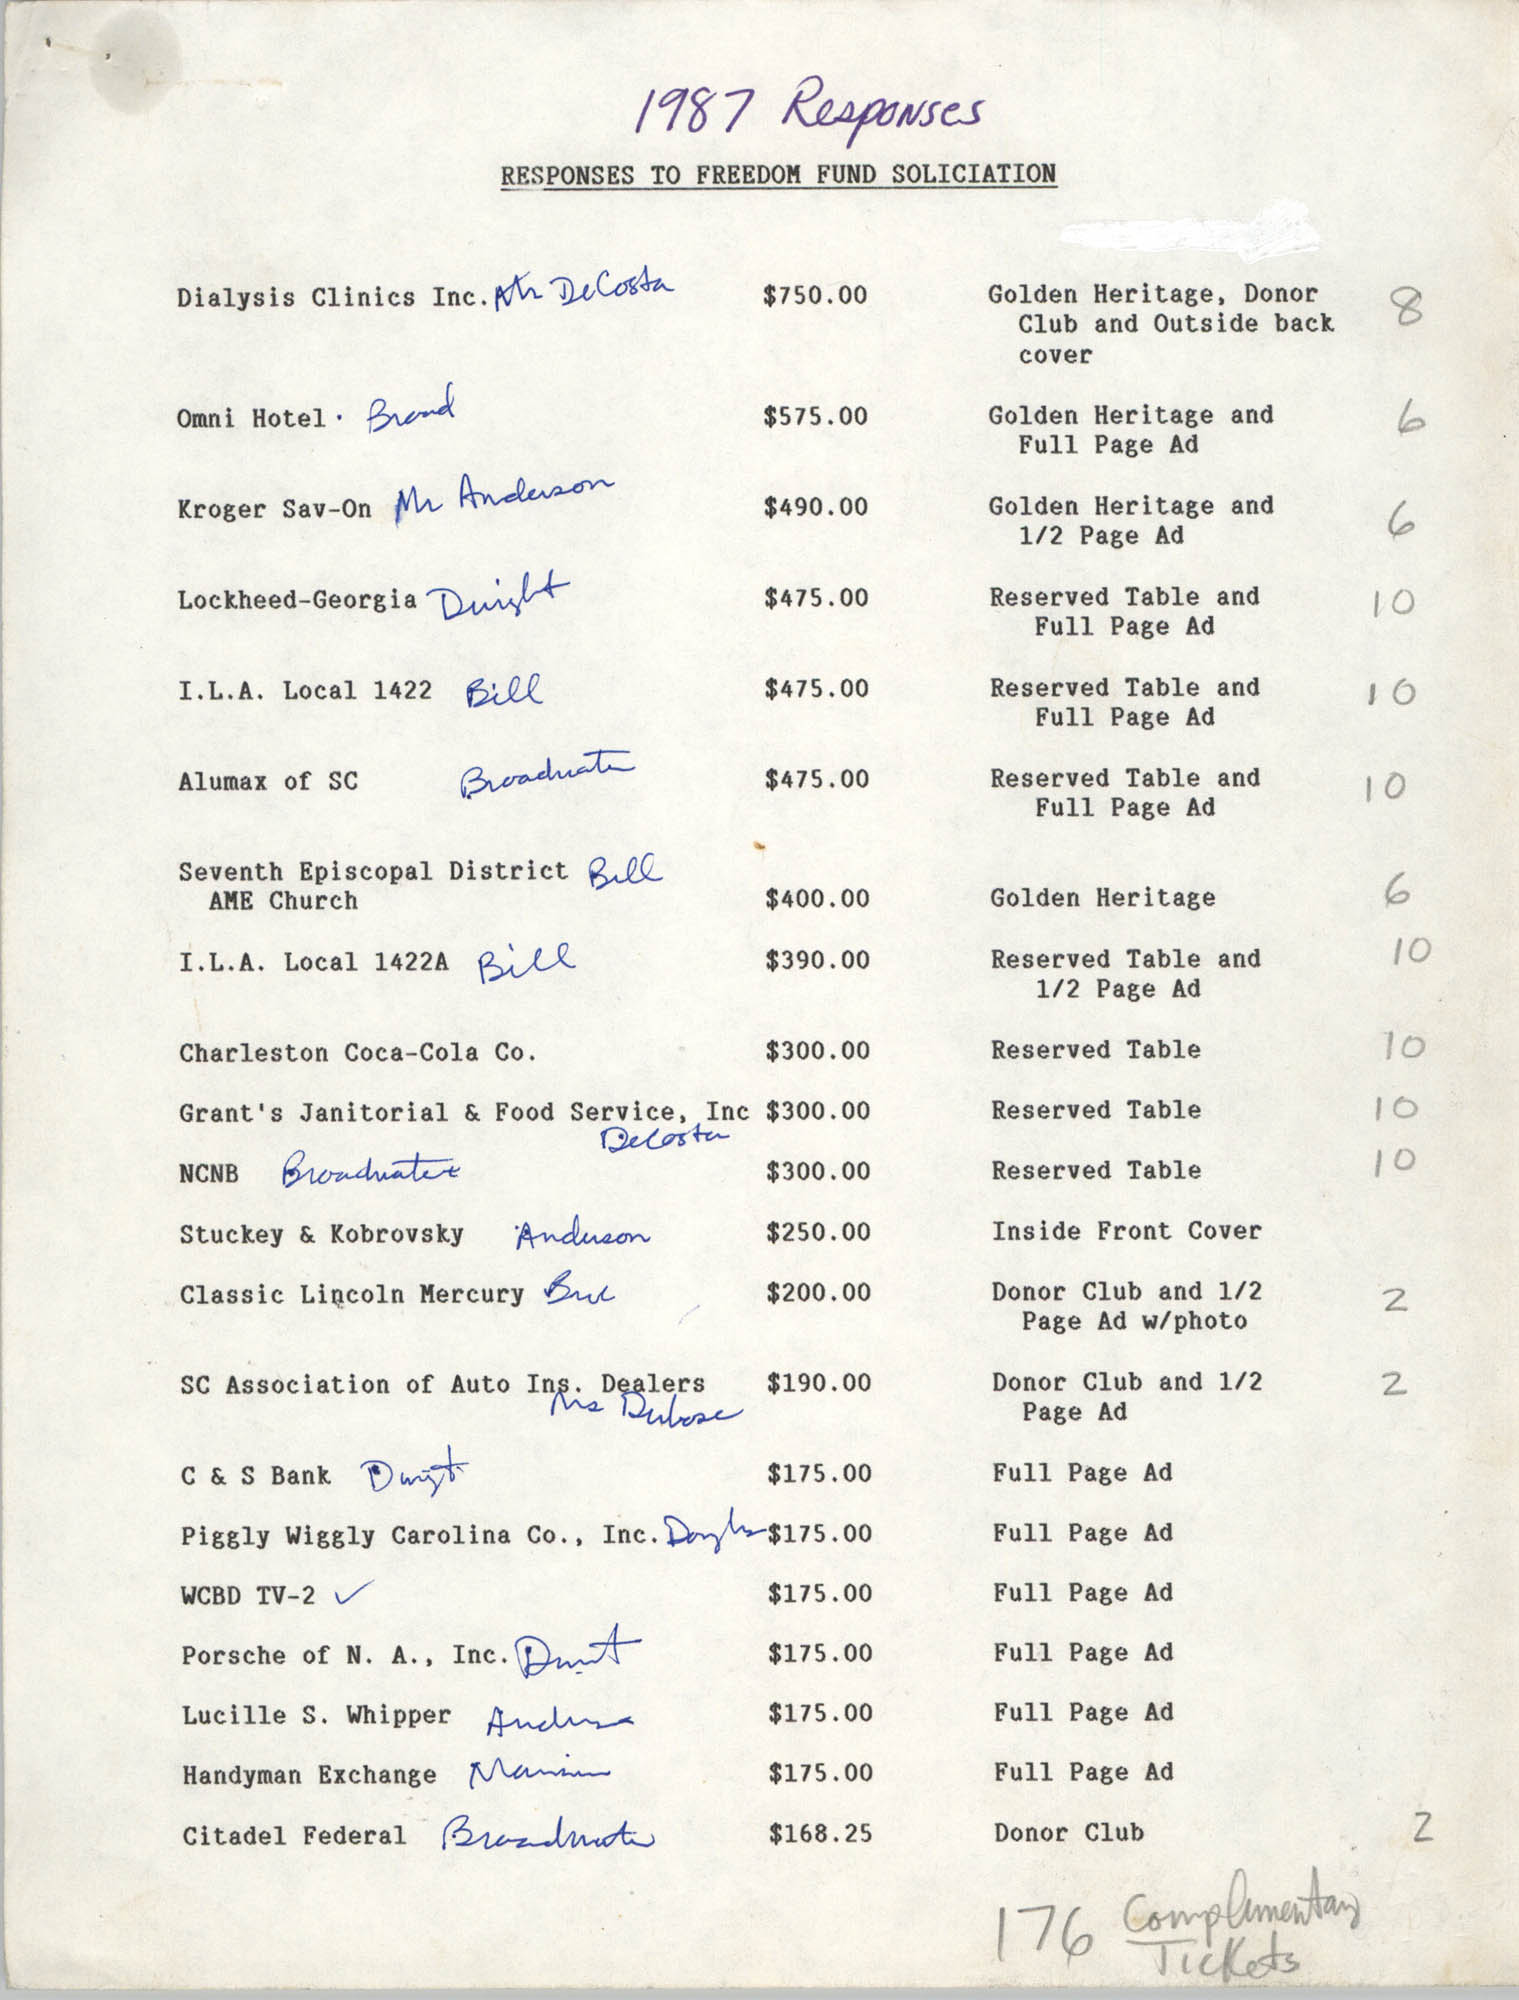 Responses to Freedom Fund Solicitation, 1987